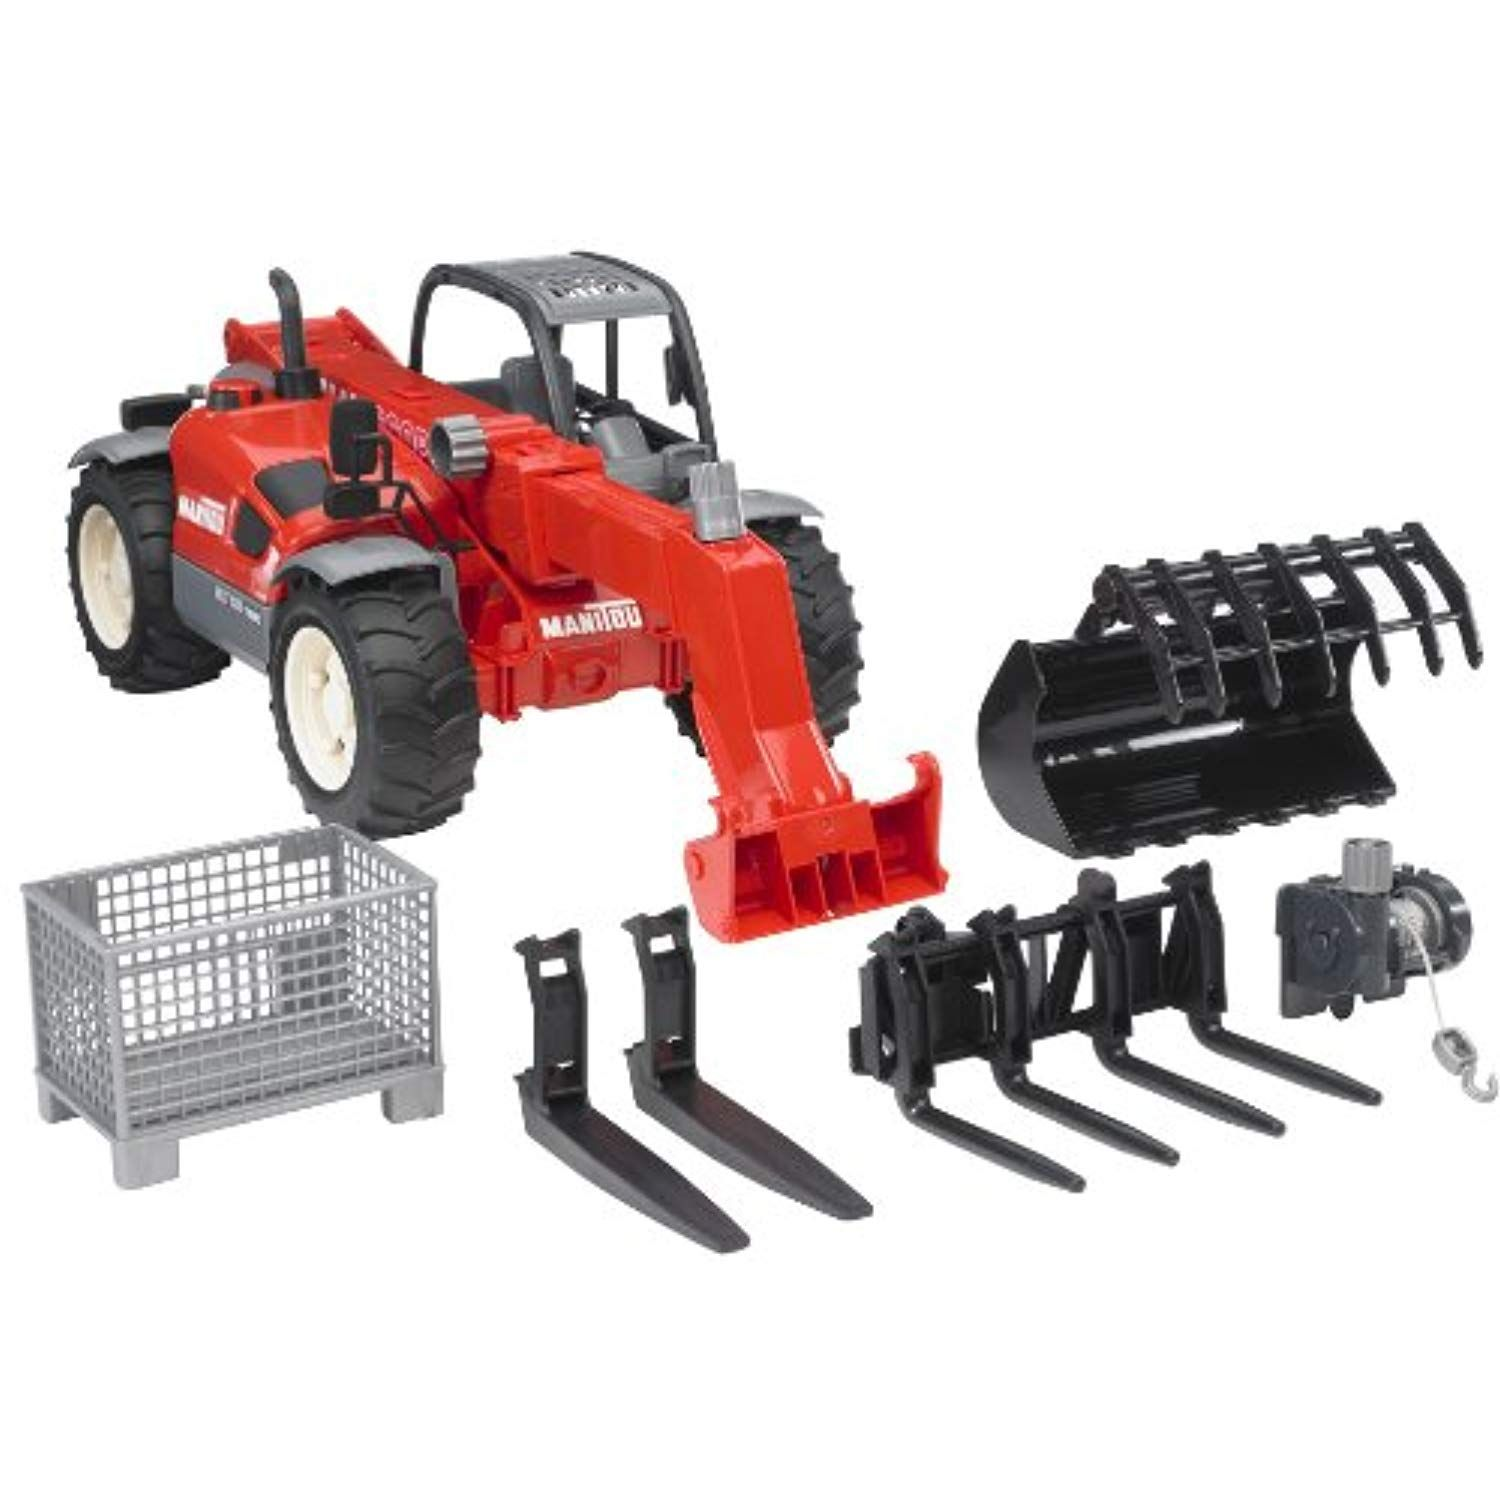 Bruder Toys Manitou Telescopic Loader Mlt 633 With Accessories Click Image To Review More Details This Is An Affiliate L Best Kids Toys Play Vehicles Toys